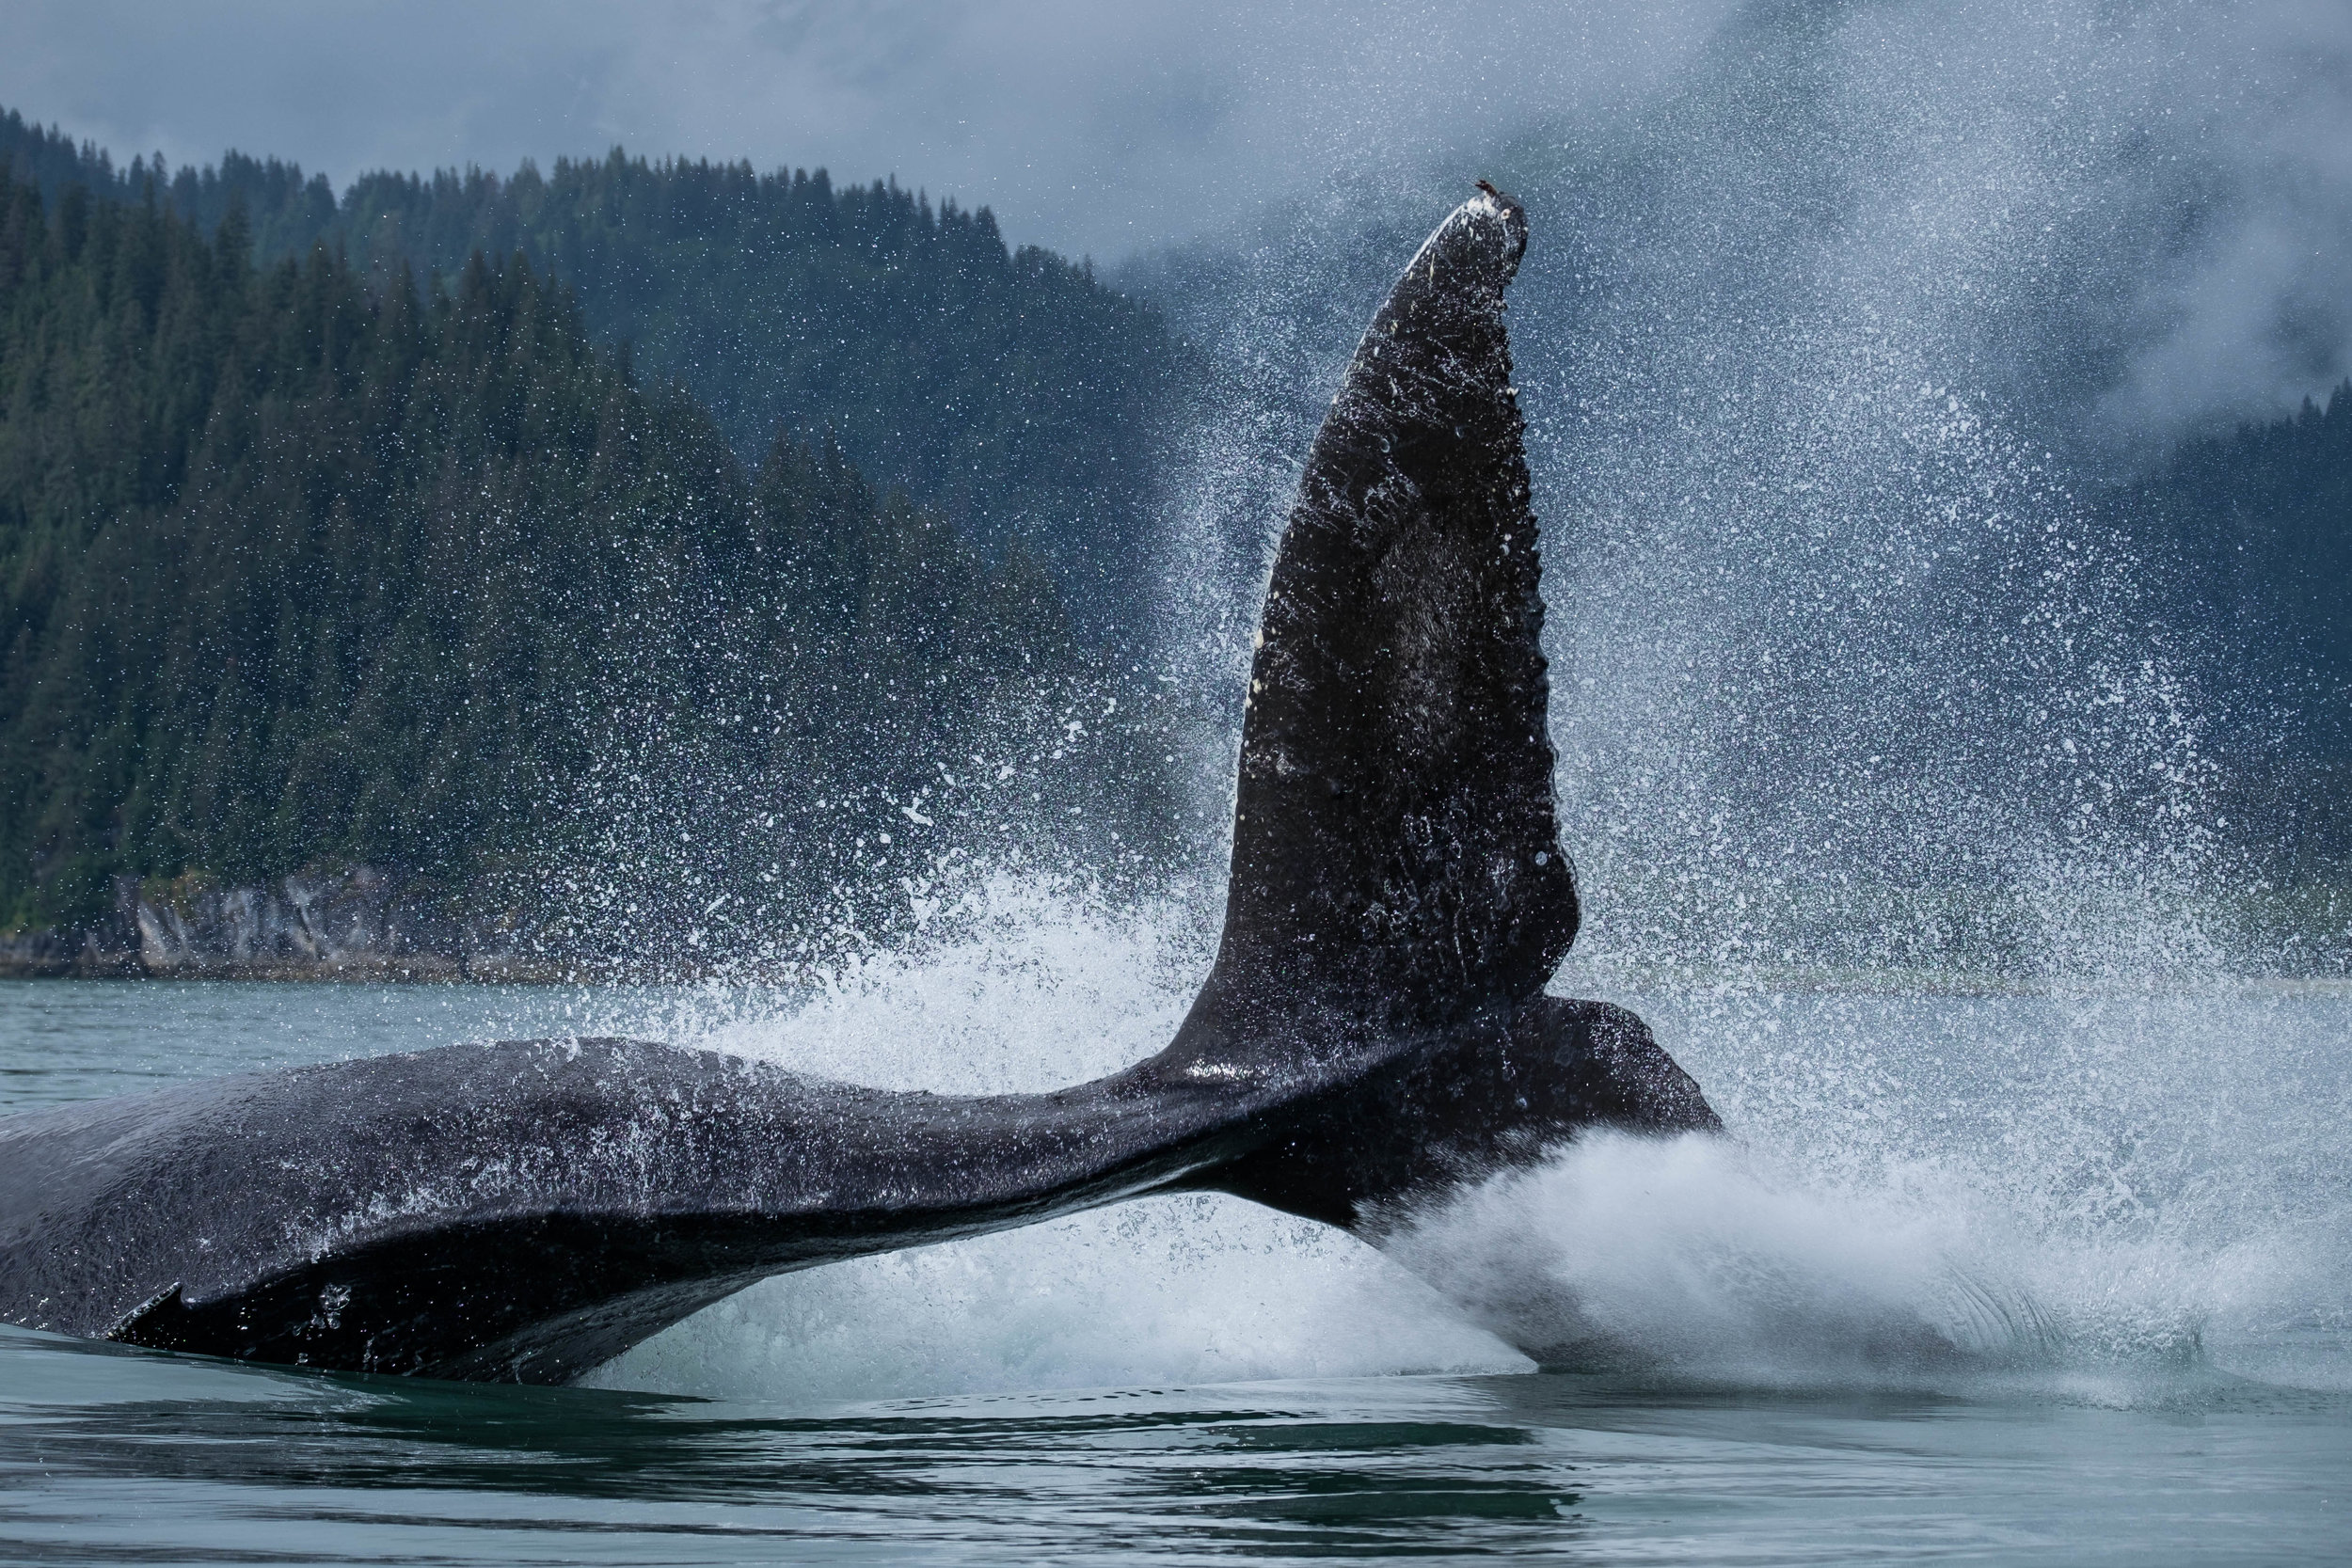 A humpback whale thrashes the waters of Glacier Bay, absolutely captivating every being on the planet within eyesight.